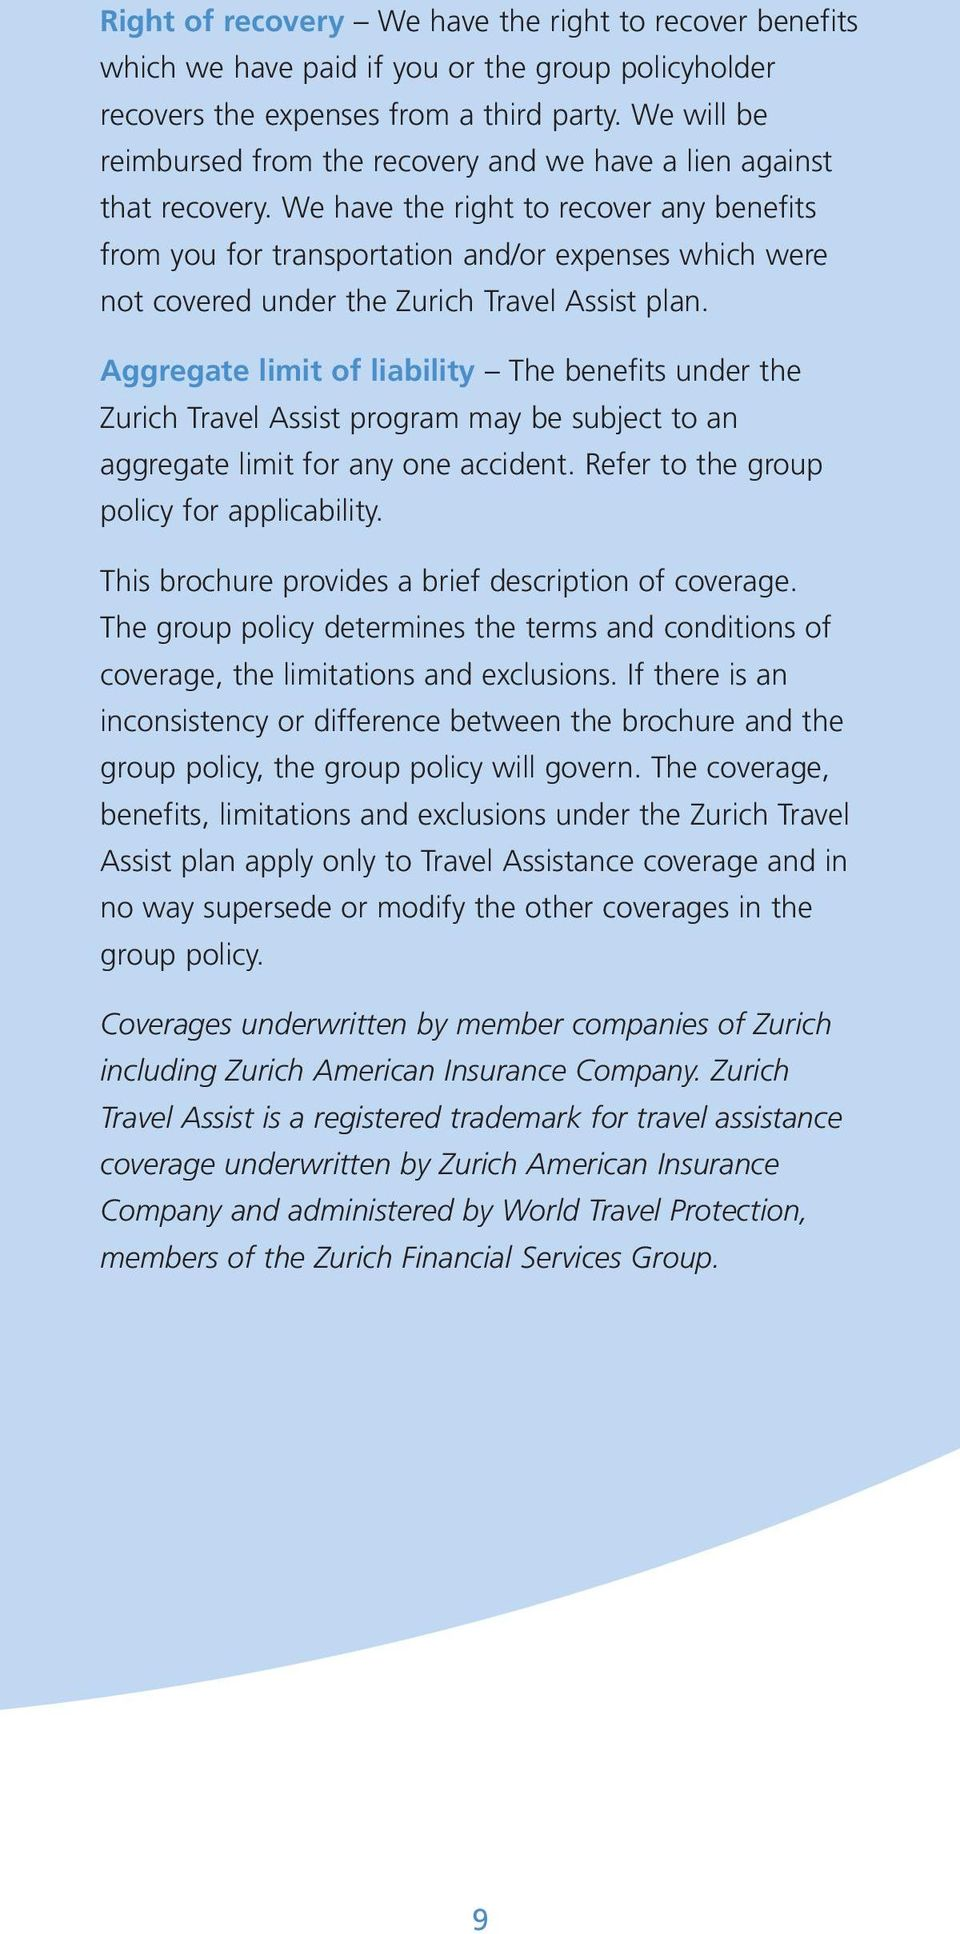 We have the right to recover any benefits from you for transportation and/or expenses which were not covered under the Zurich Travel Assist plan.